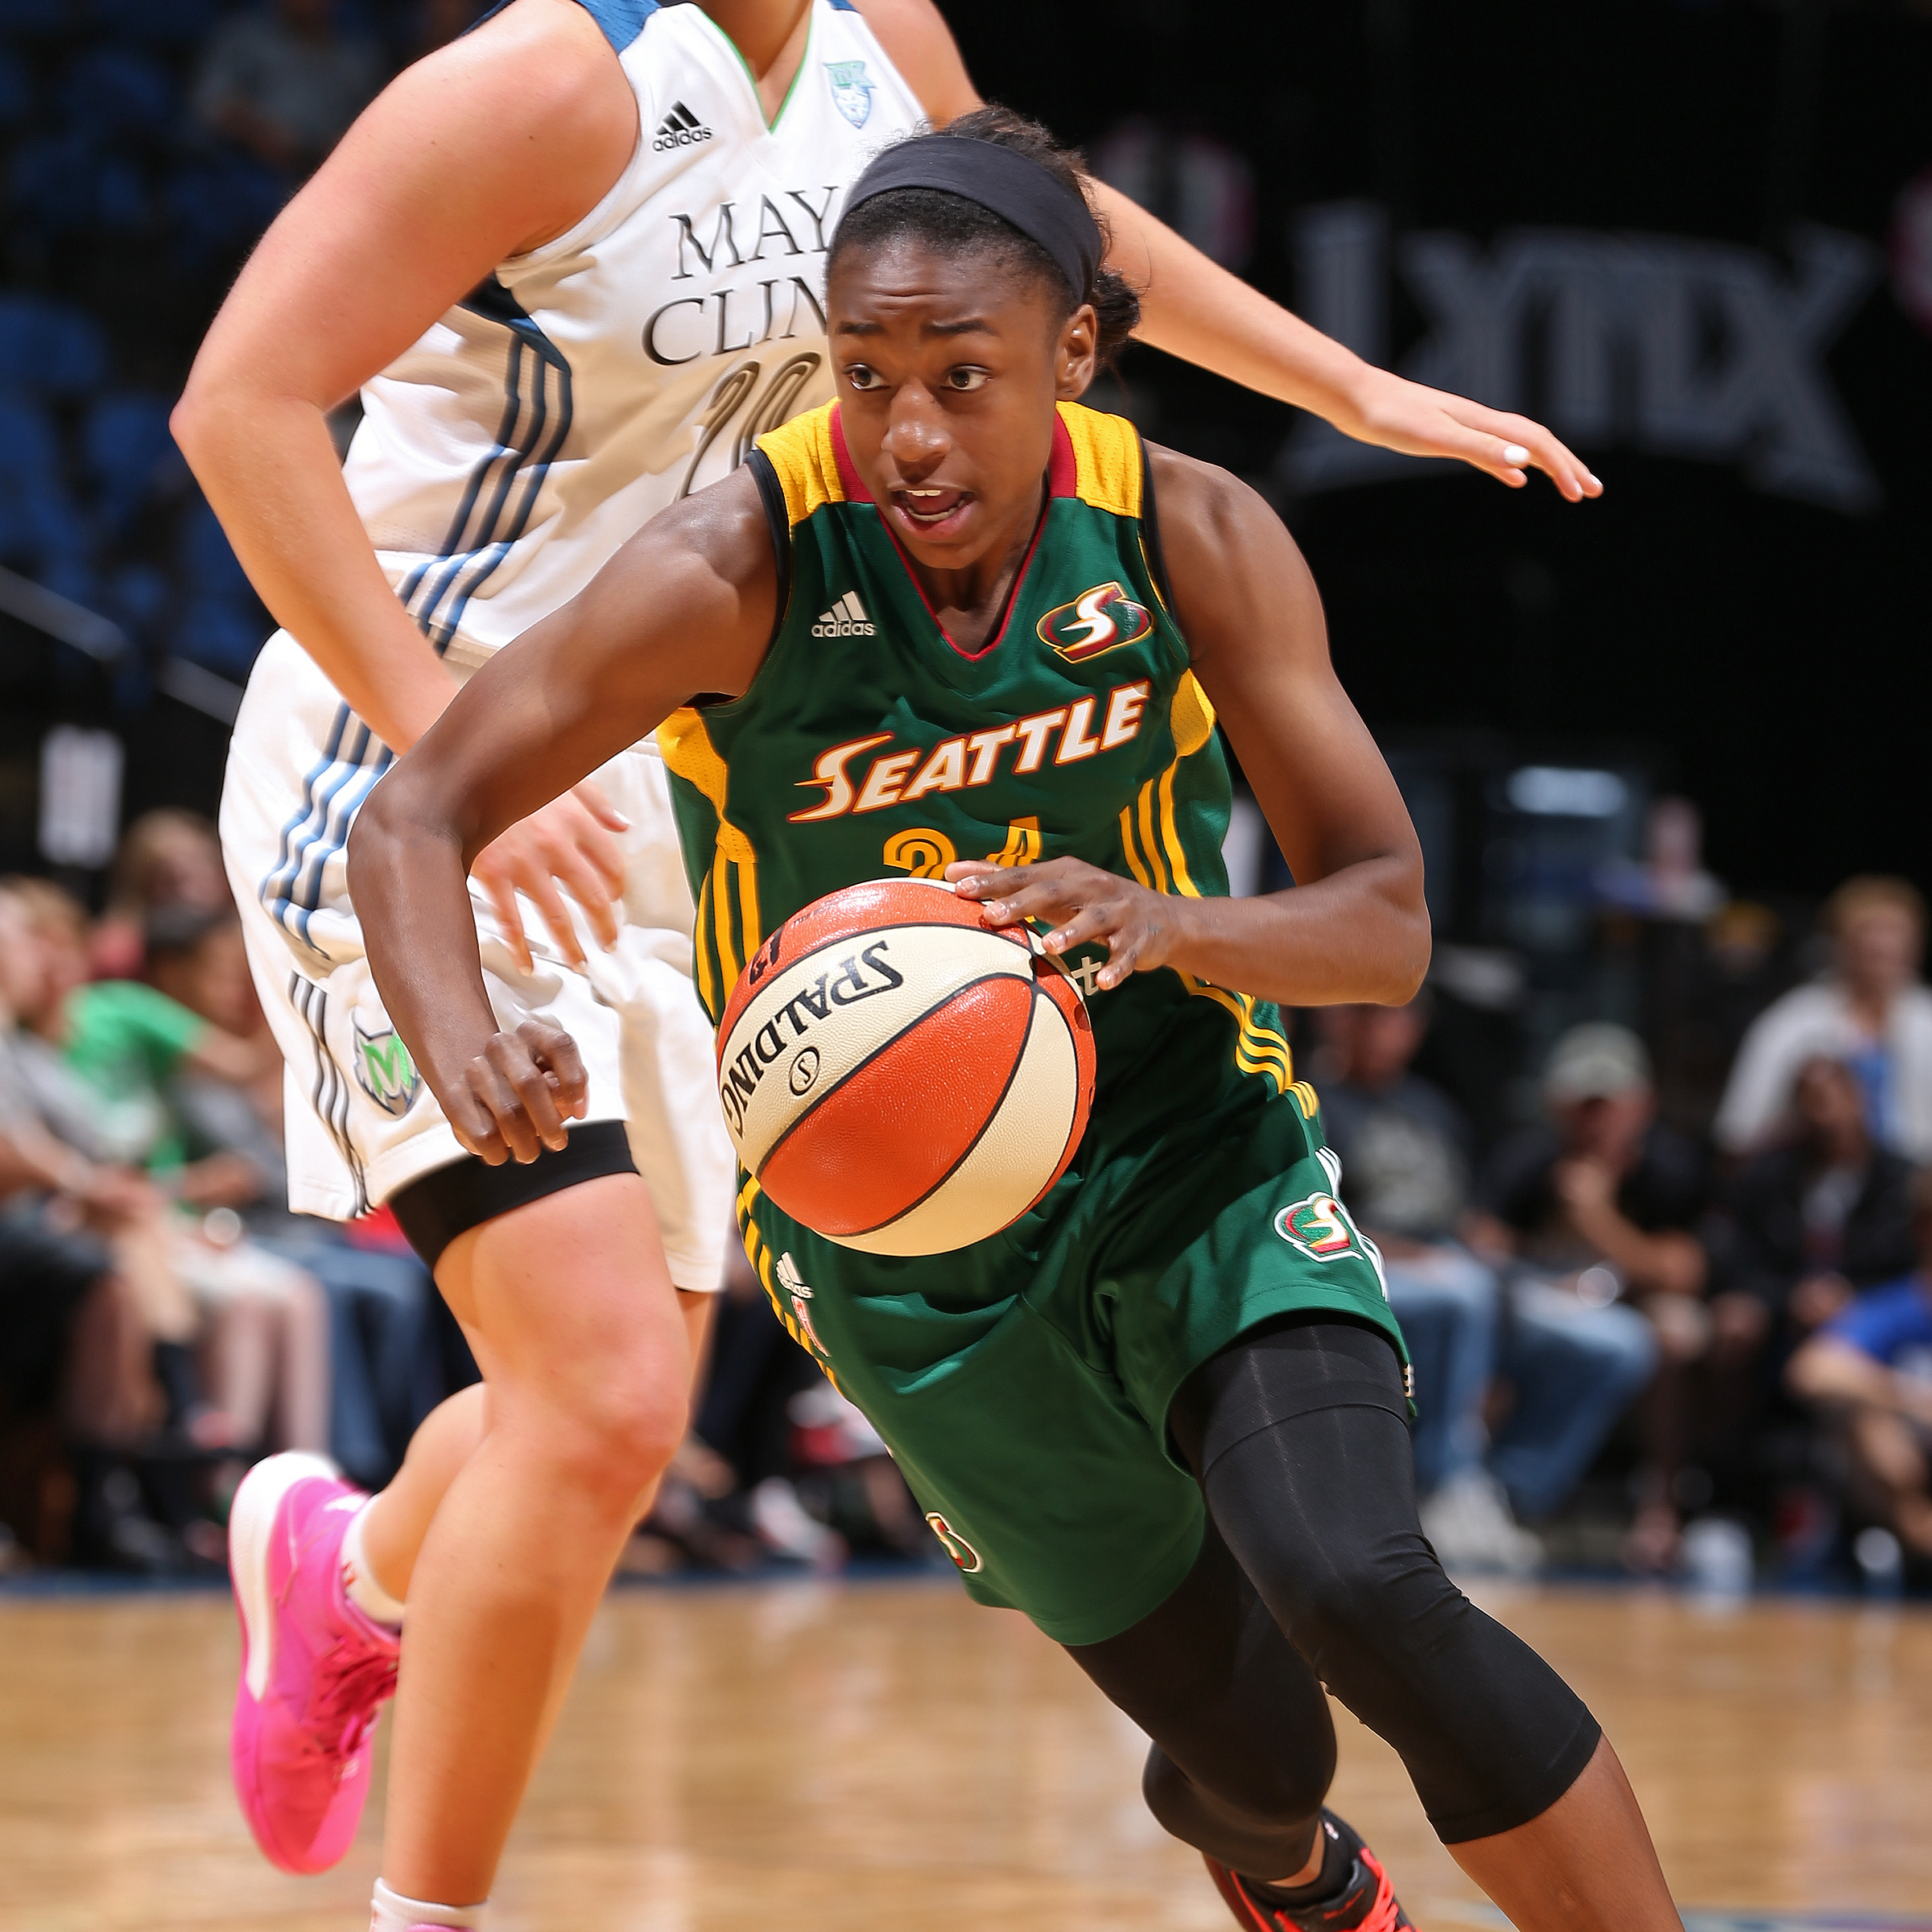 Guard Jewell Loyd continued her run of great play for Seattle, finishing the game with 13 points, three assists and one blocked shot against the Lynx.